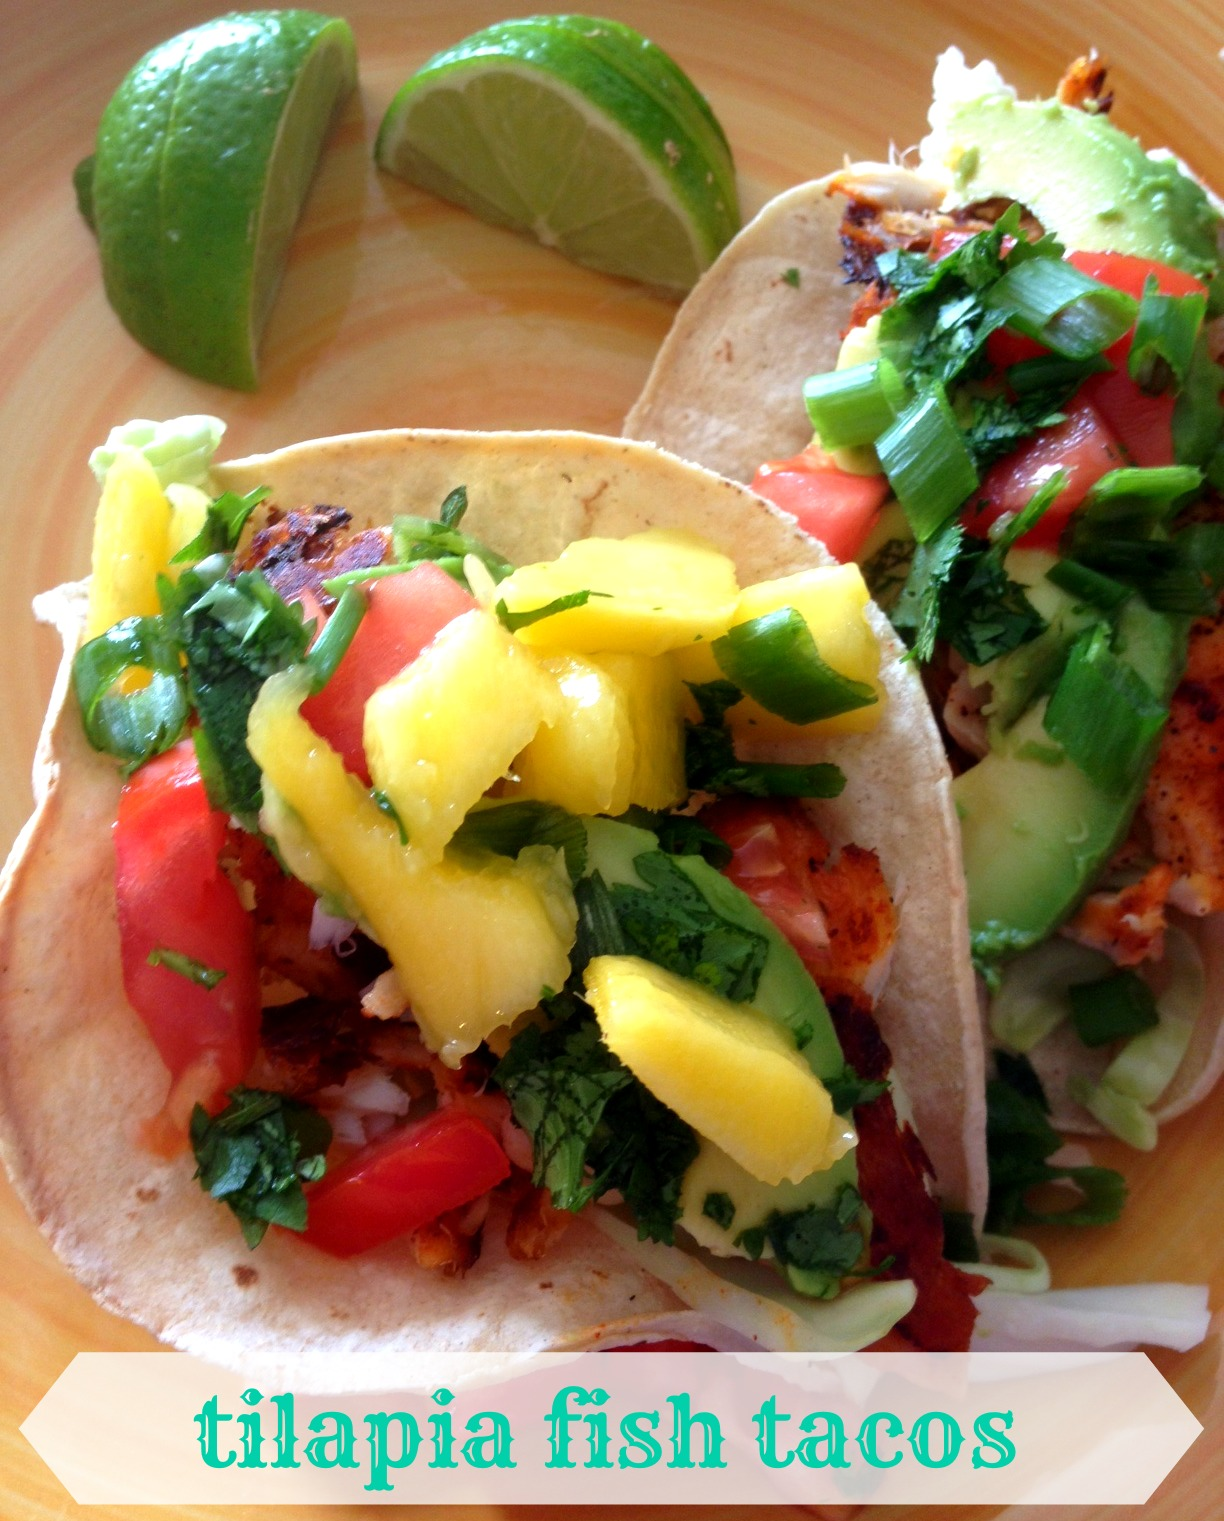 Tilapia fish tacos recipes dishmaps for How to make tilapia fish